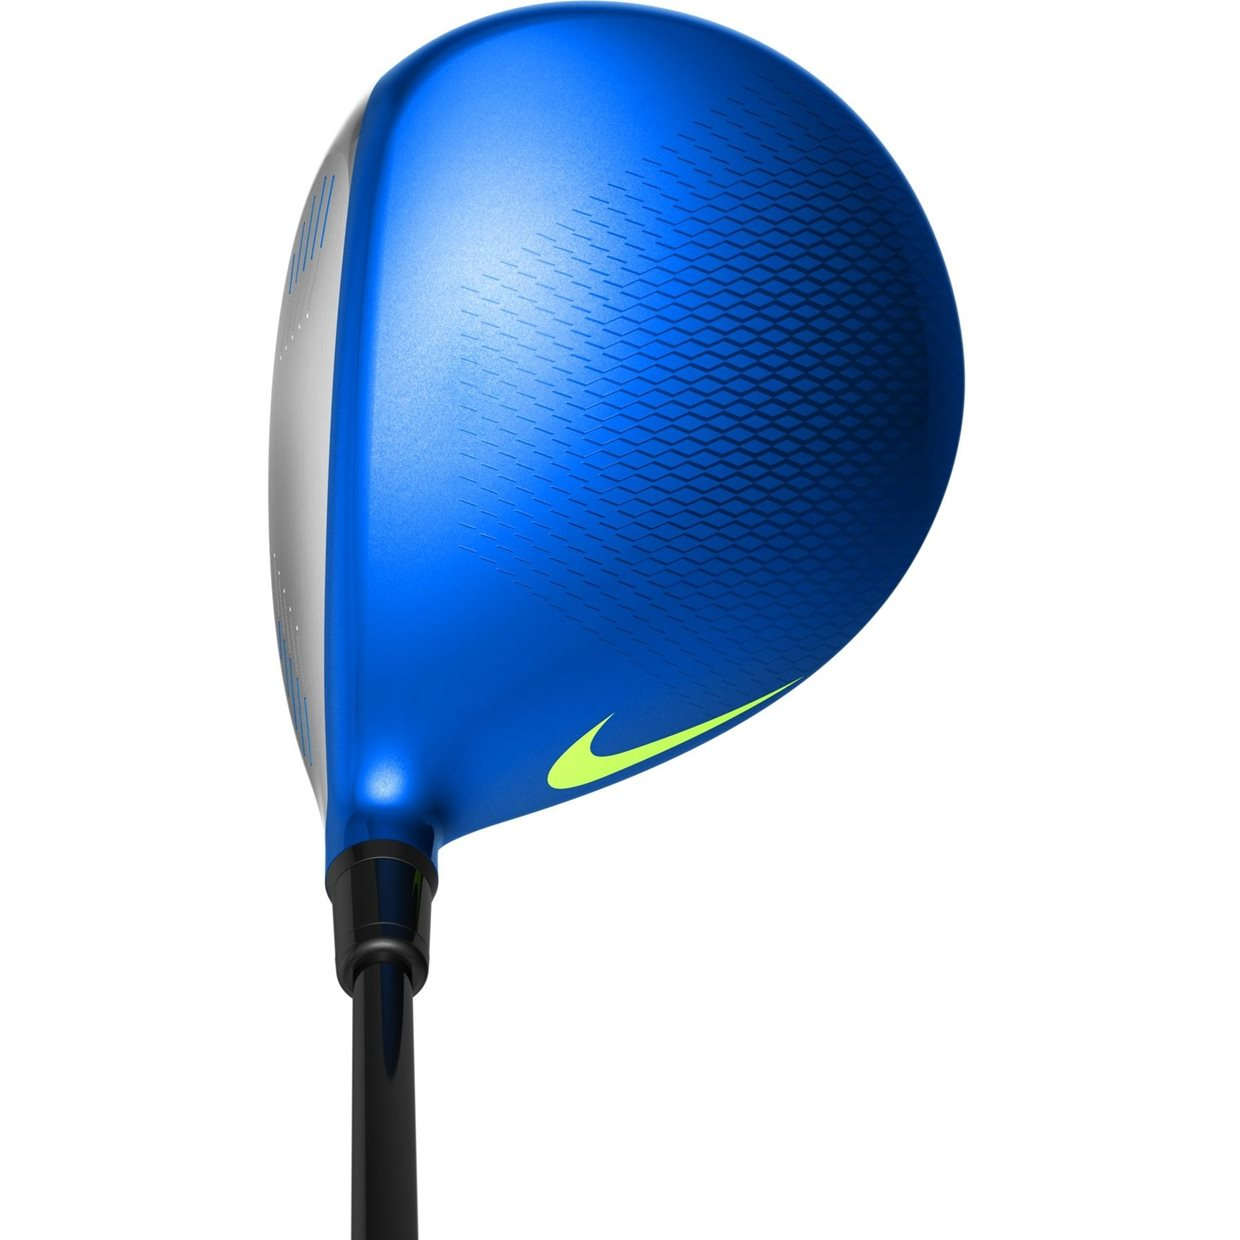 747b9b259aaf Nike Vapor Fly Driver Preowned Clubs · Alternate Product Image View 1  Alternate Product Image View 2 ...